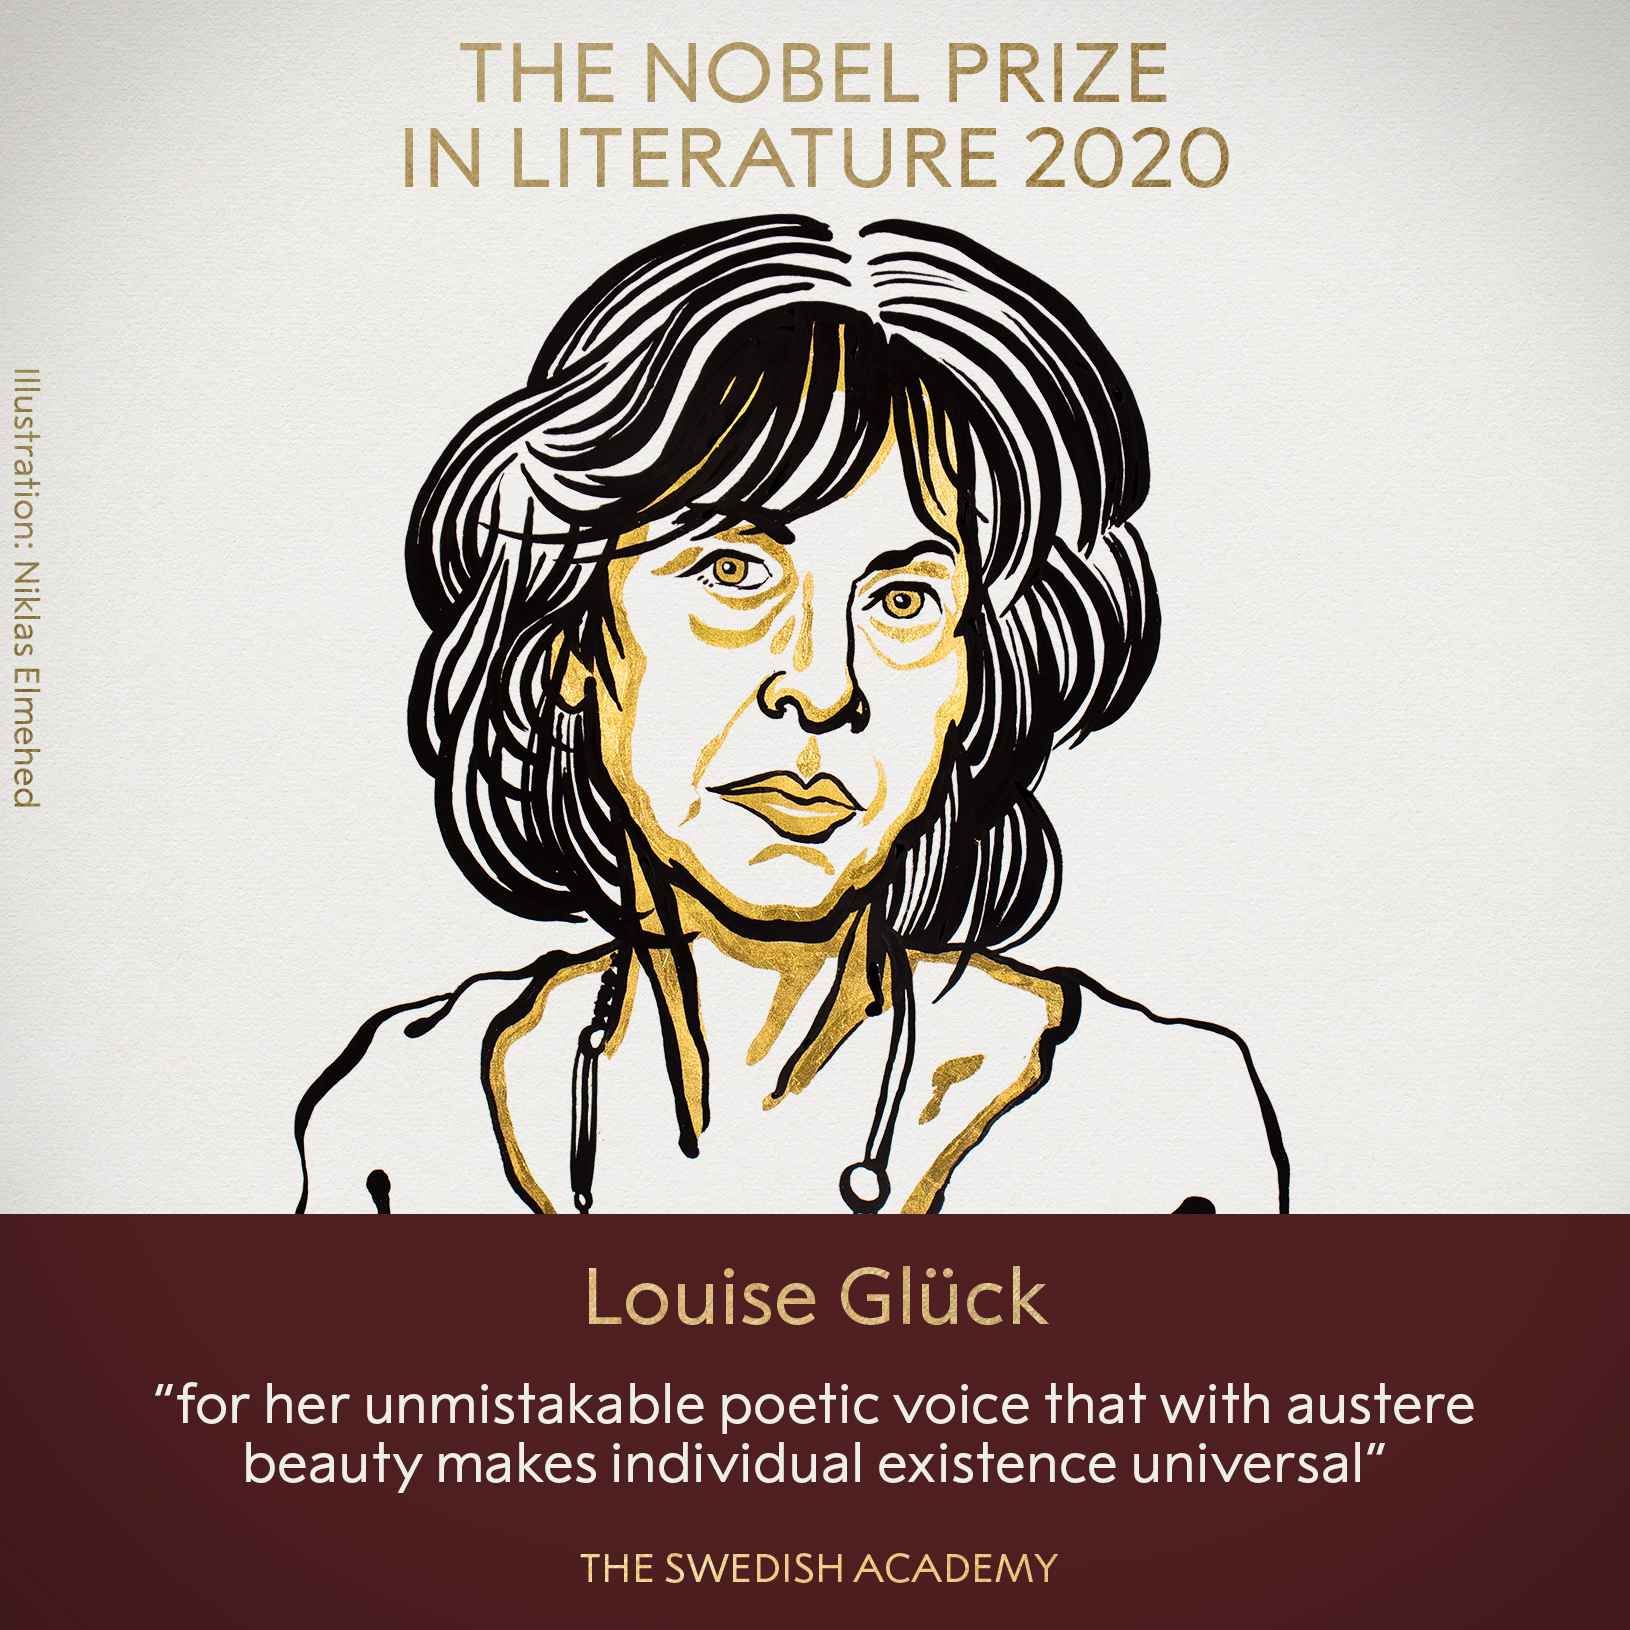 Louise Glück wins the 2020 Nobel prize in literature